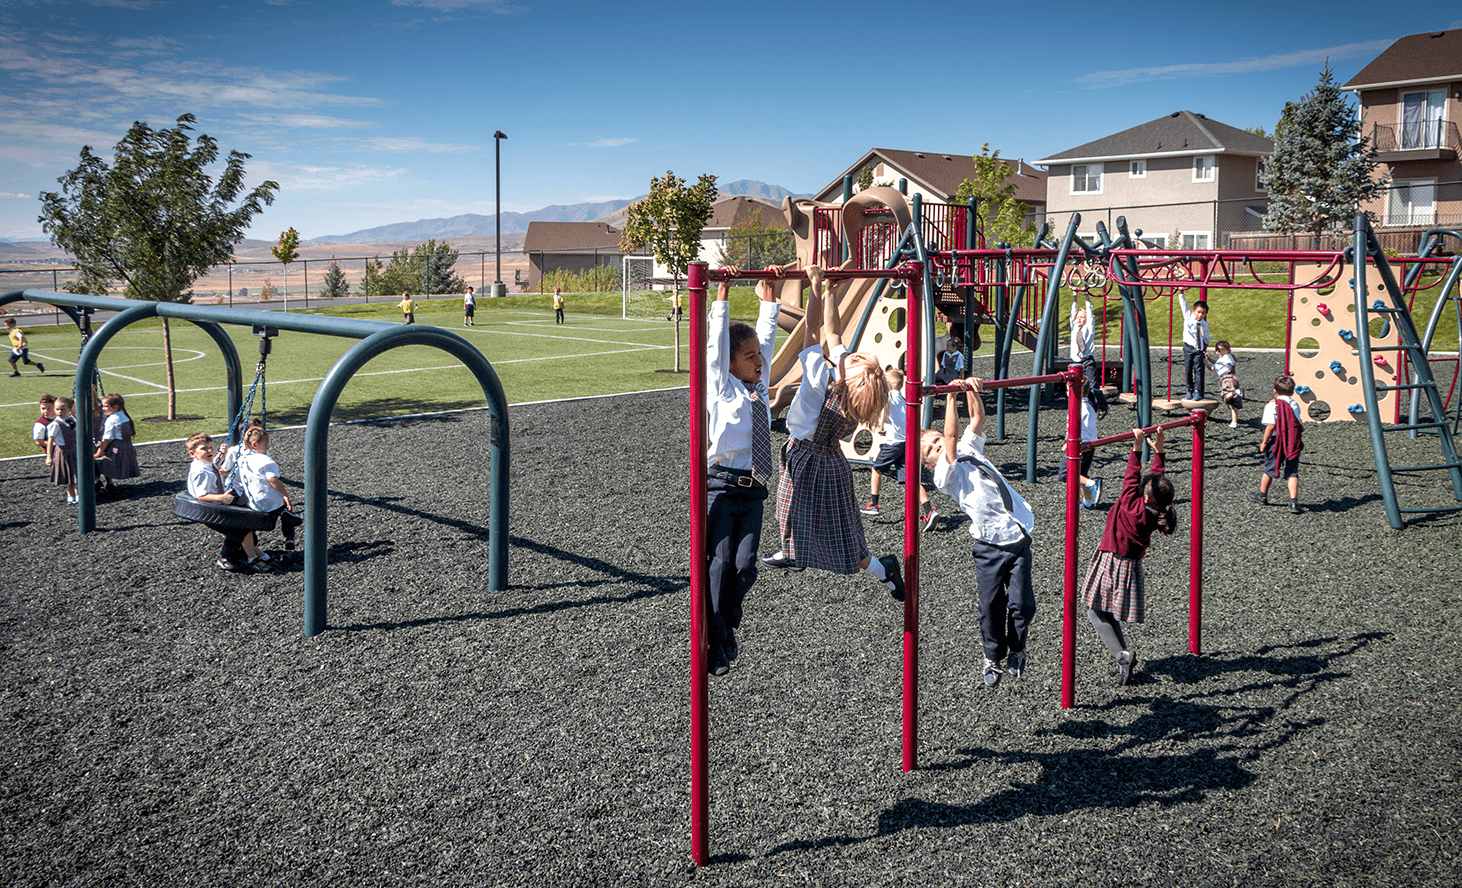 Playground Monkey Bars | Challenger School - Traverse Mountain | Private School In Lehi, Utah